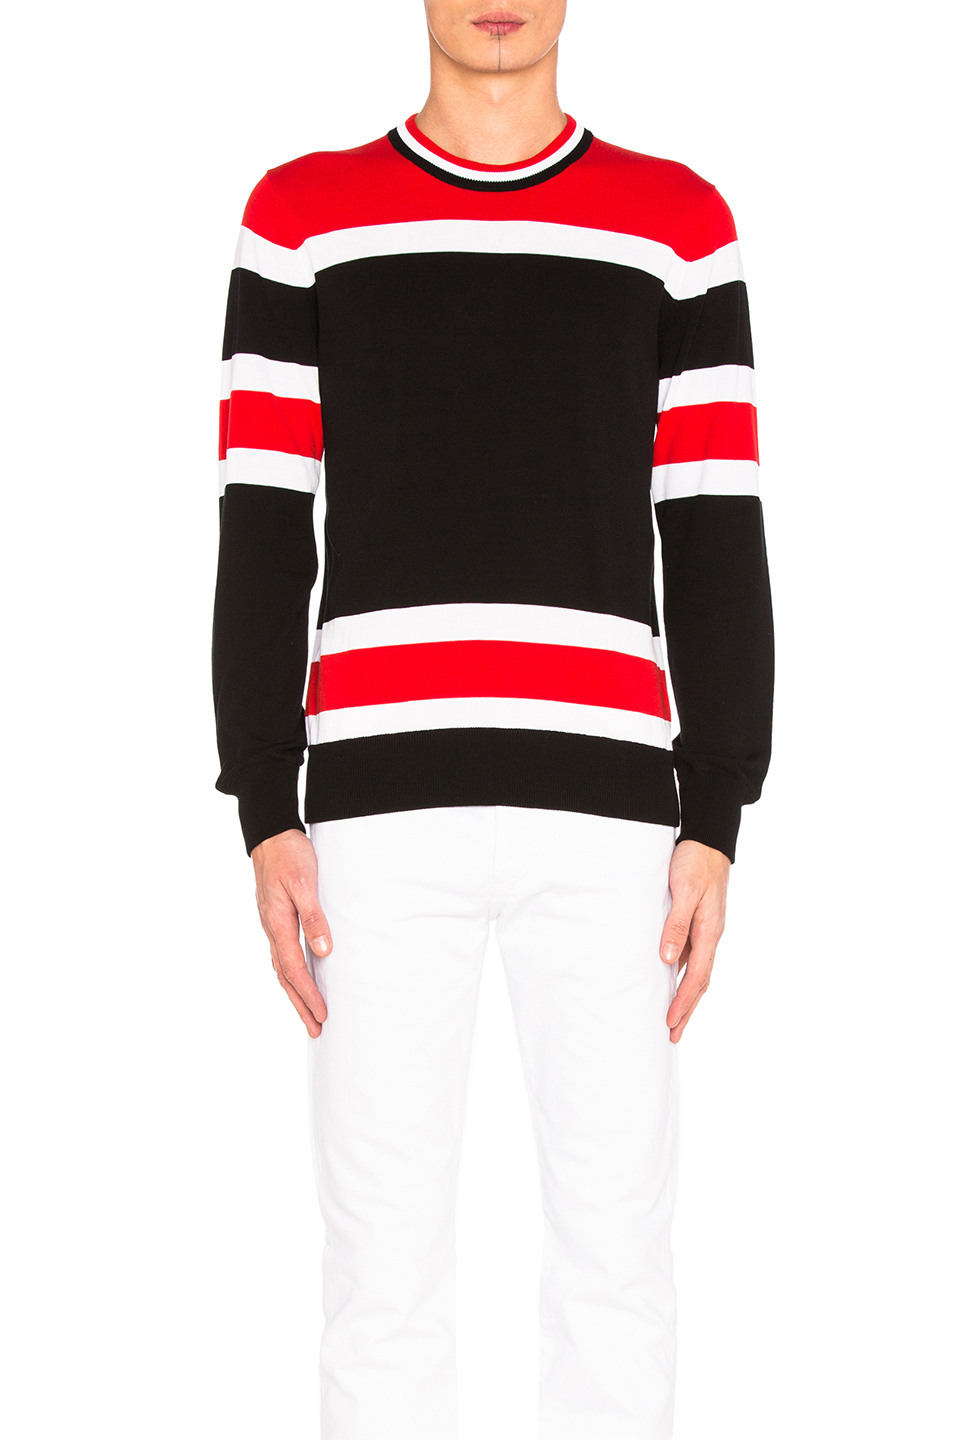 Givenchy Light Gauge Stripe Sweater in Black,Stripes,Red